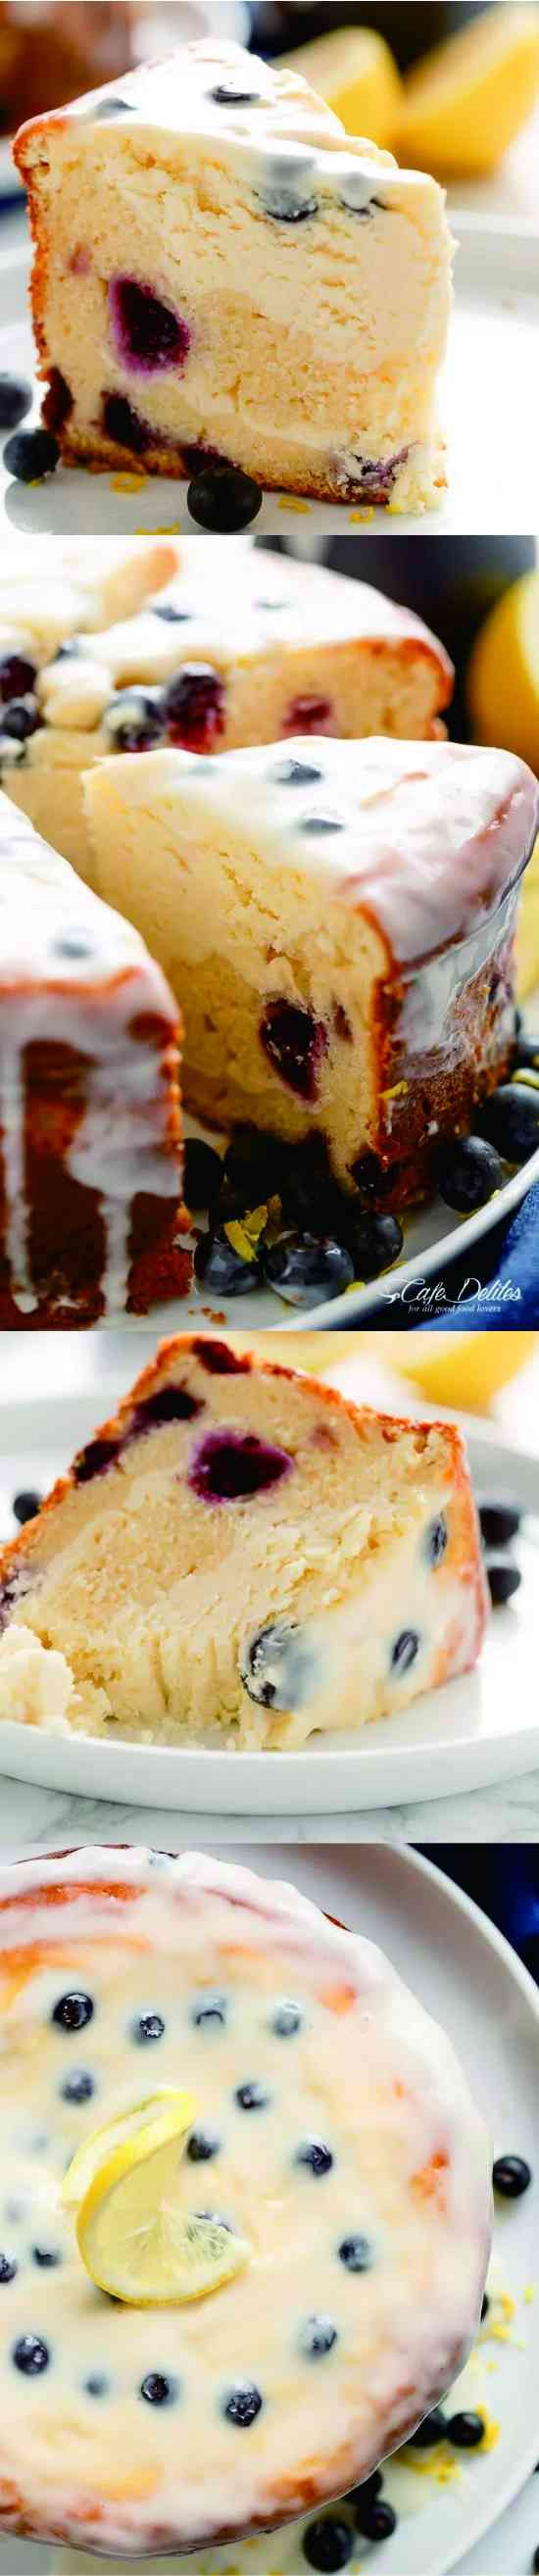 blueberry, cake, cheesecake, dessert, lemon, recipes